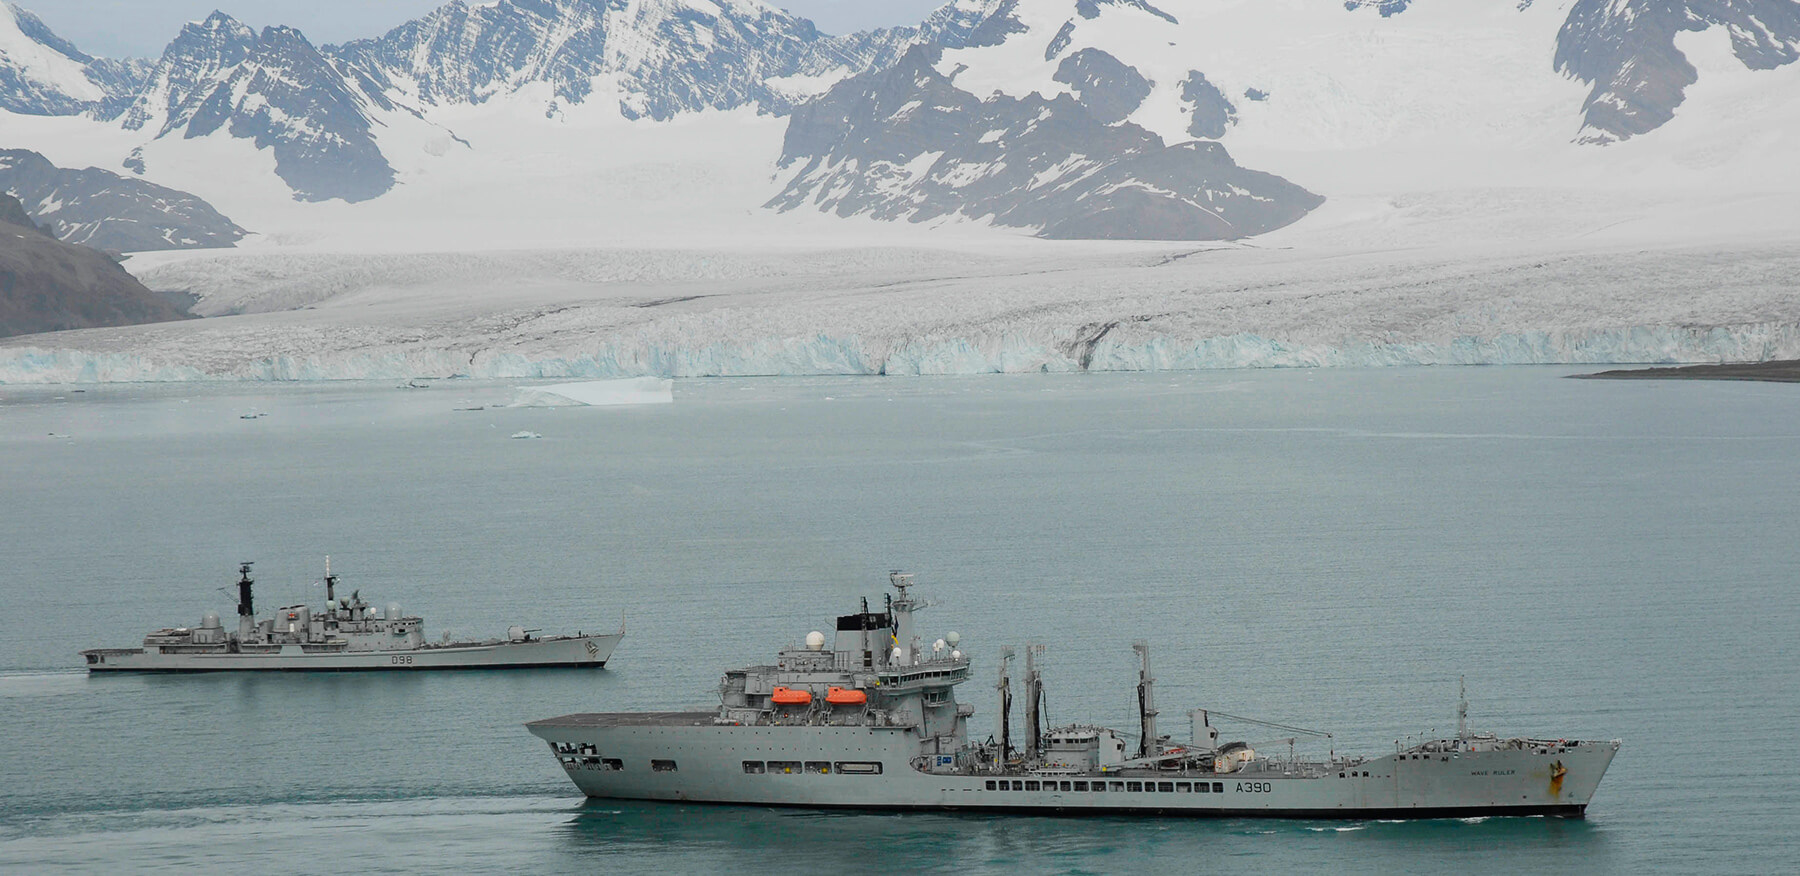 In focus: the Wave class tankers of the Royal Fleet Auxiliary   Save